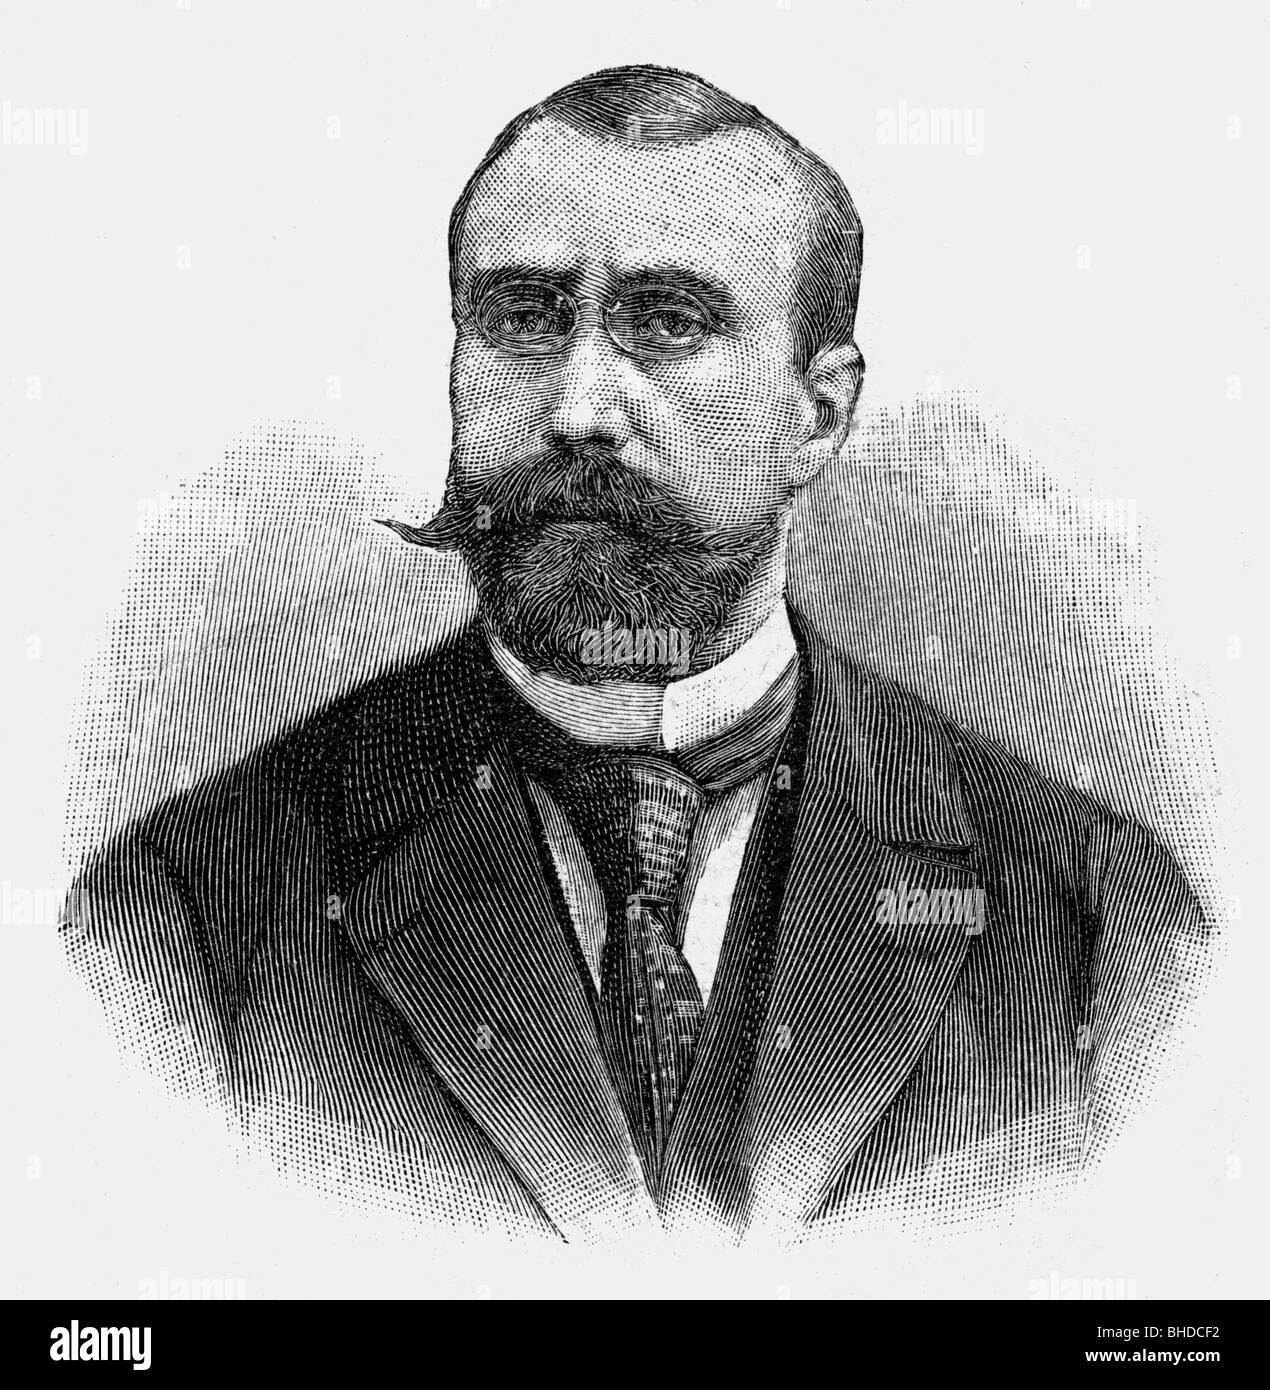 Habert, Marcel, second half of the 19th century, French politician, portrait, wood engraving, Additional-Rights - Stock Image